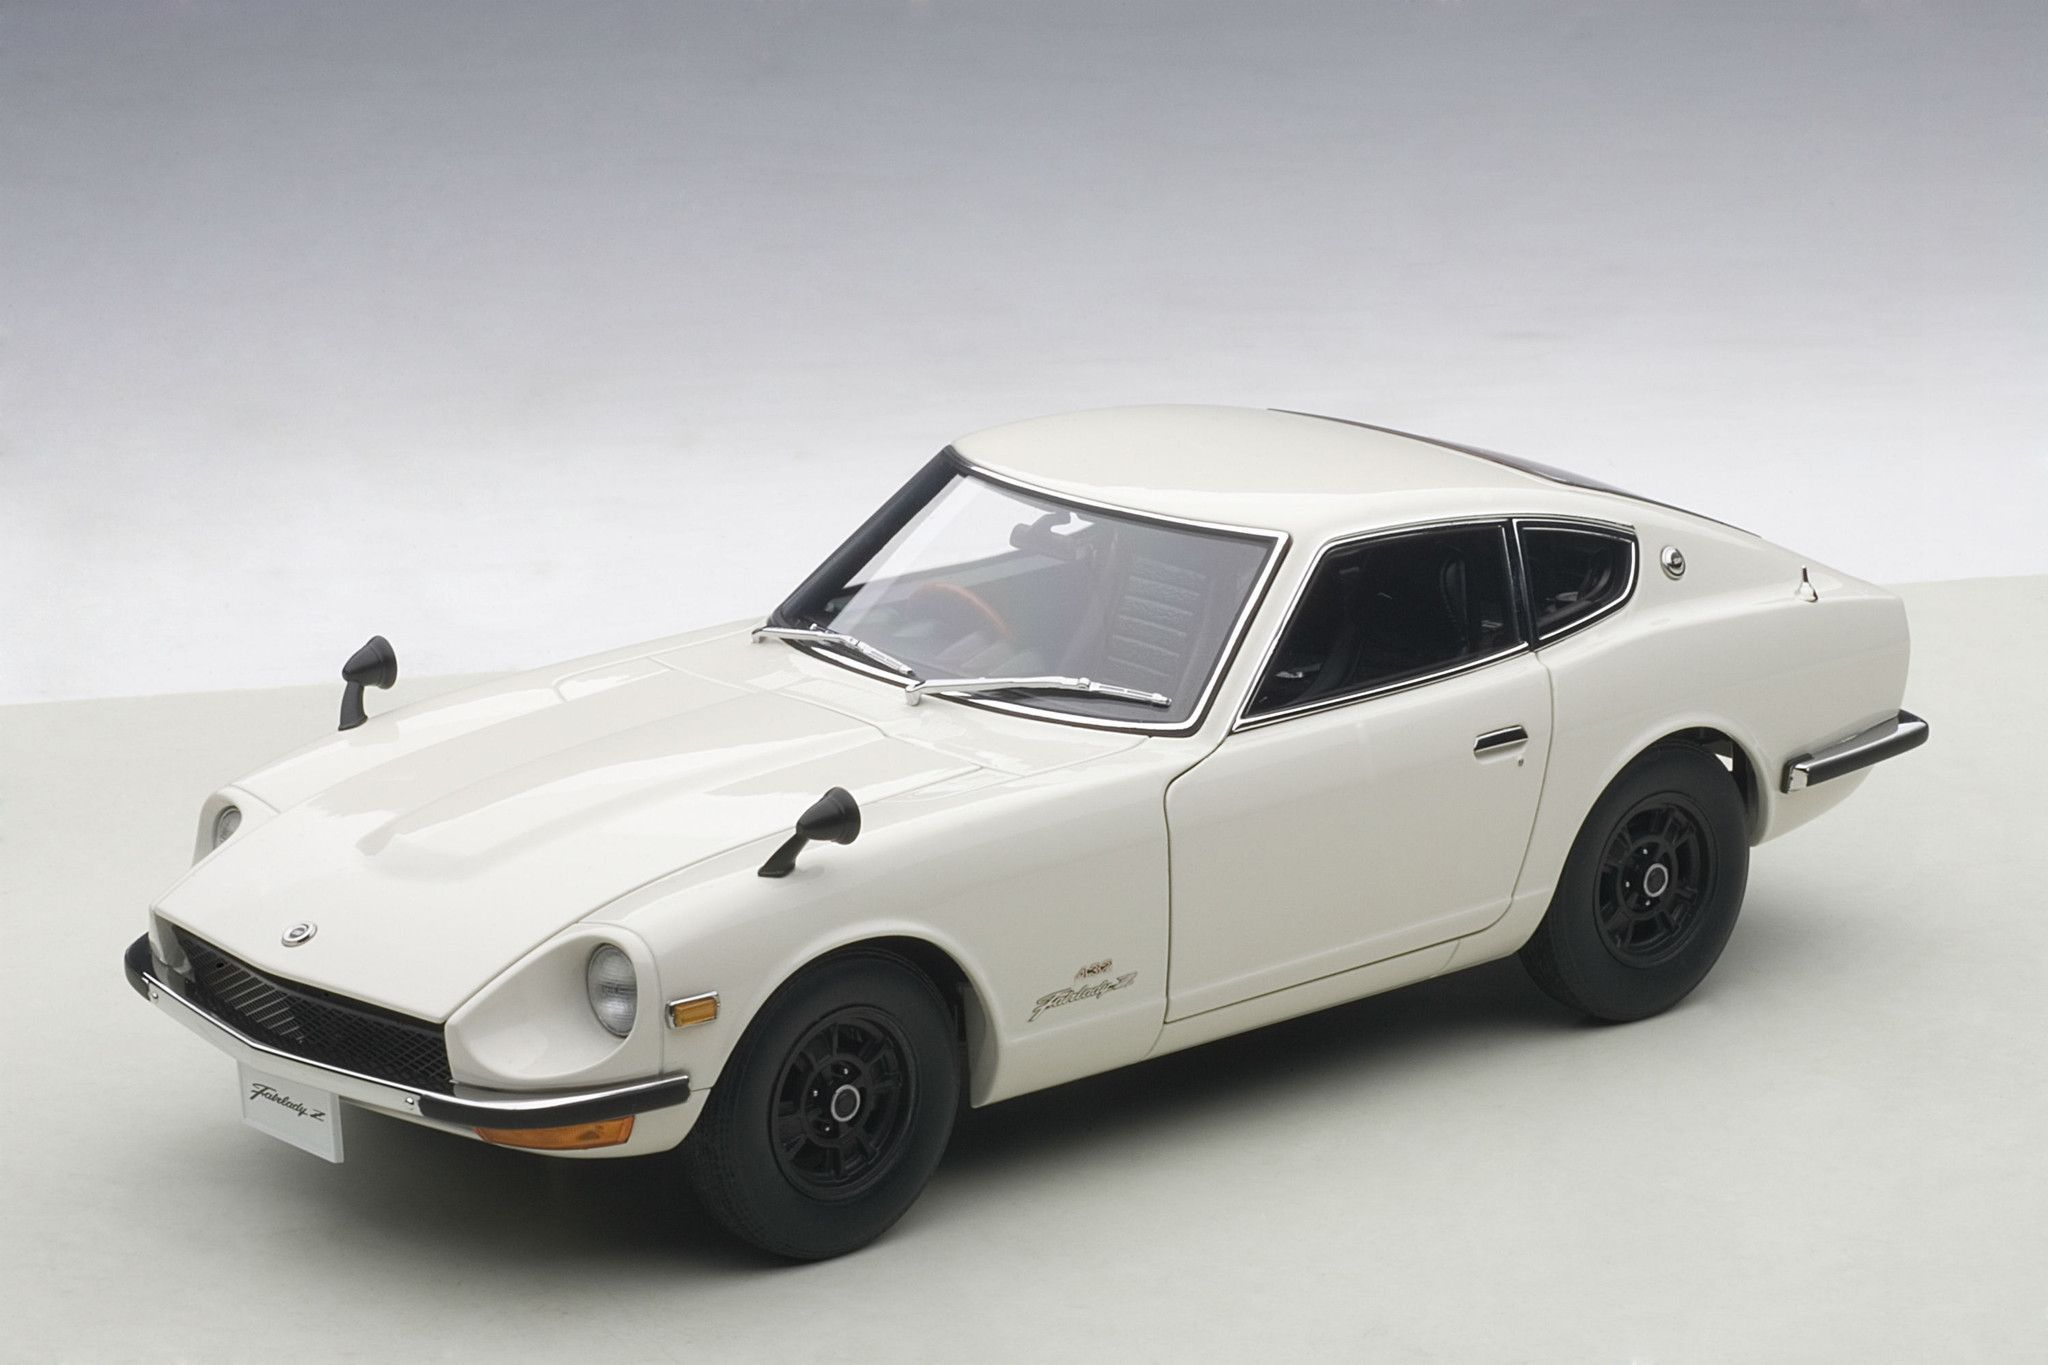 To the untrained eye, Nissan Fairlady Z432 appears much ...